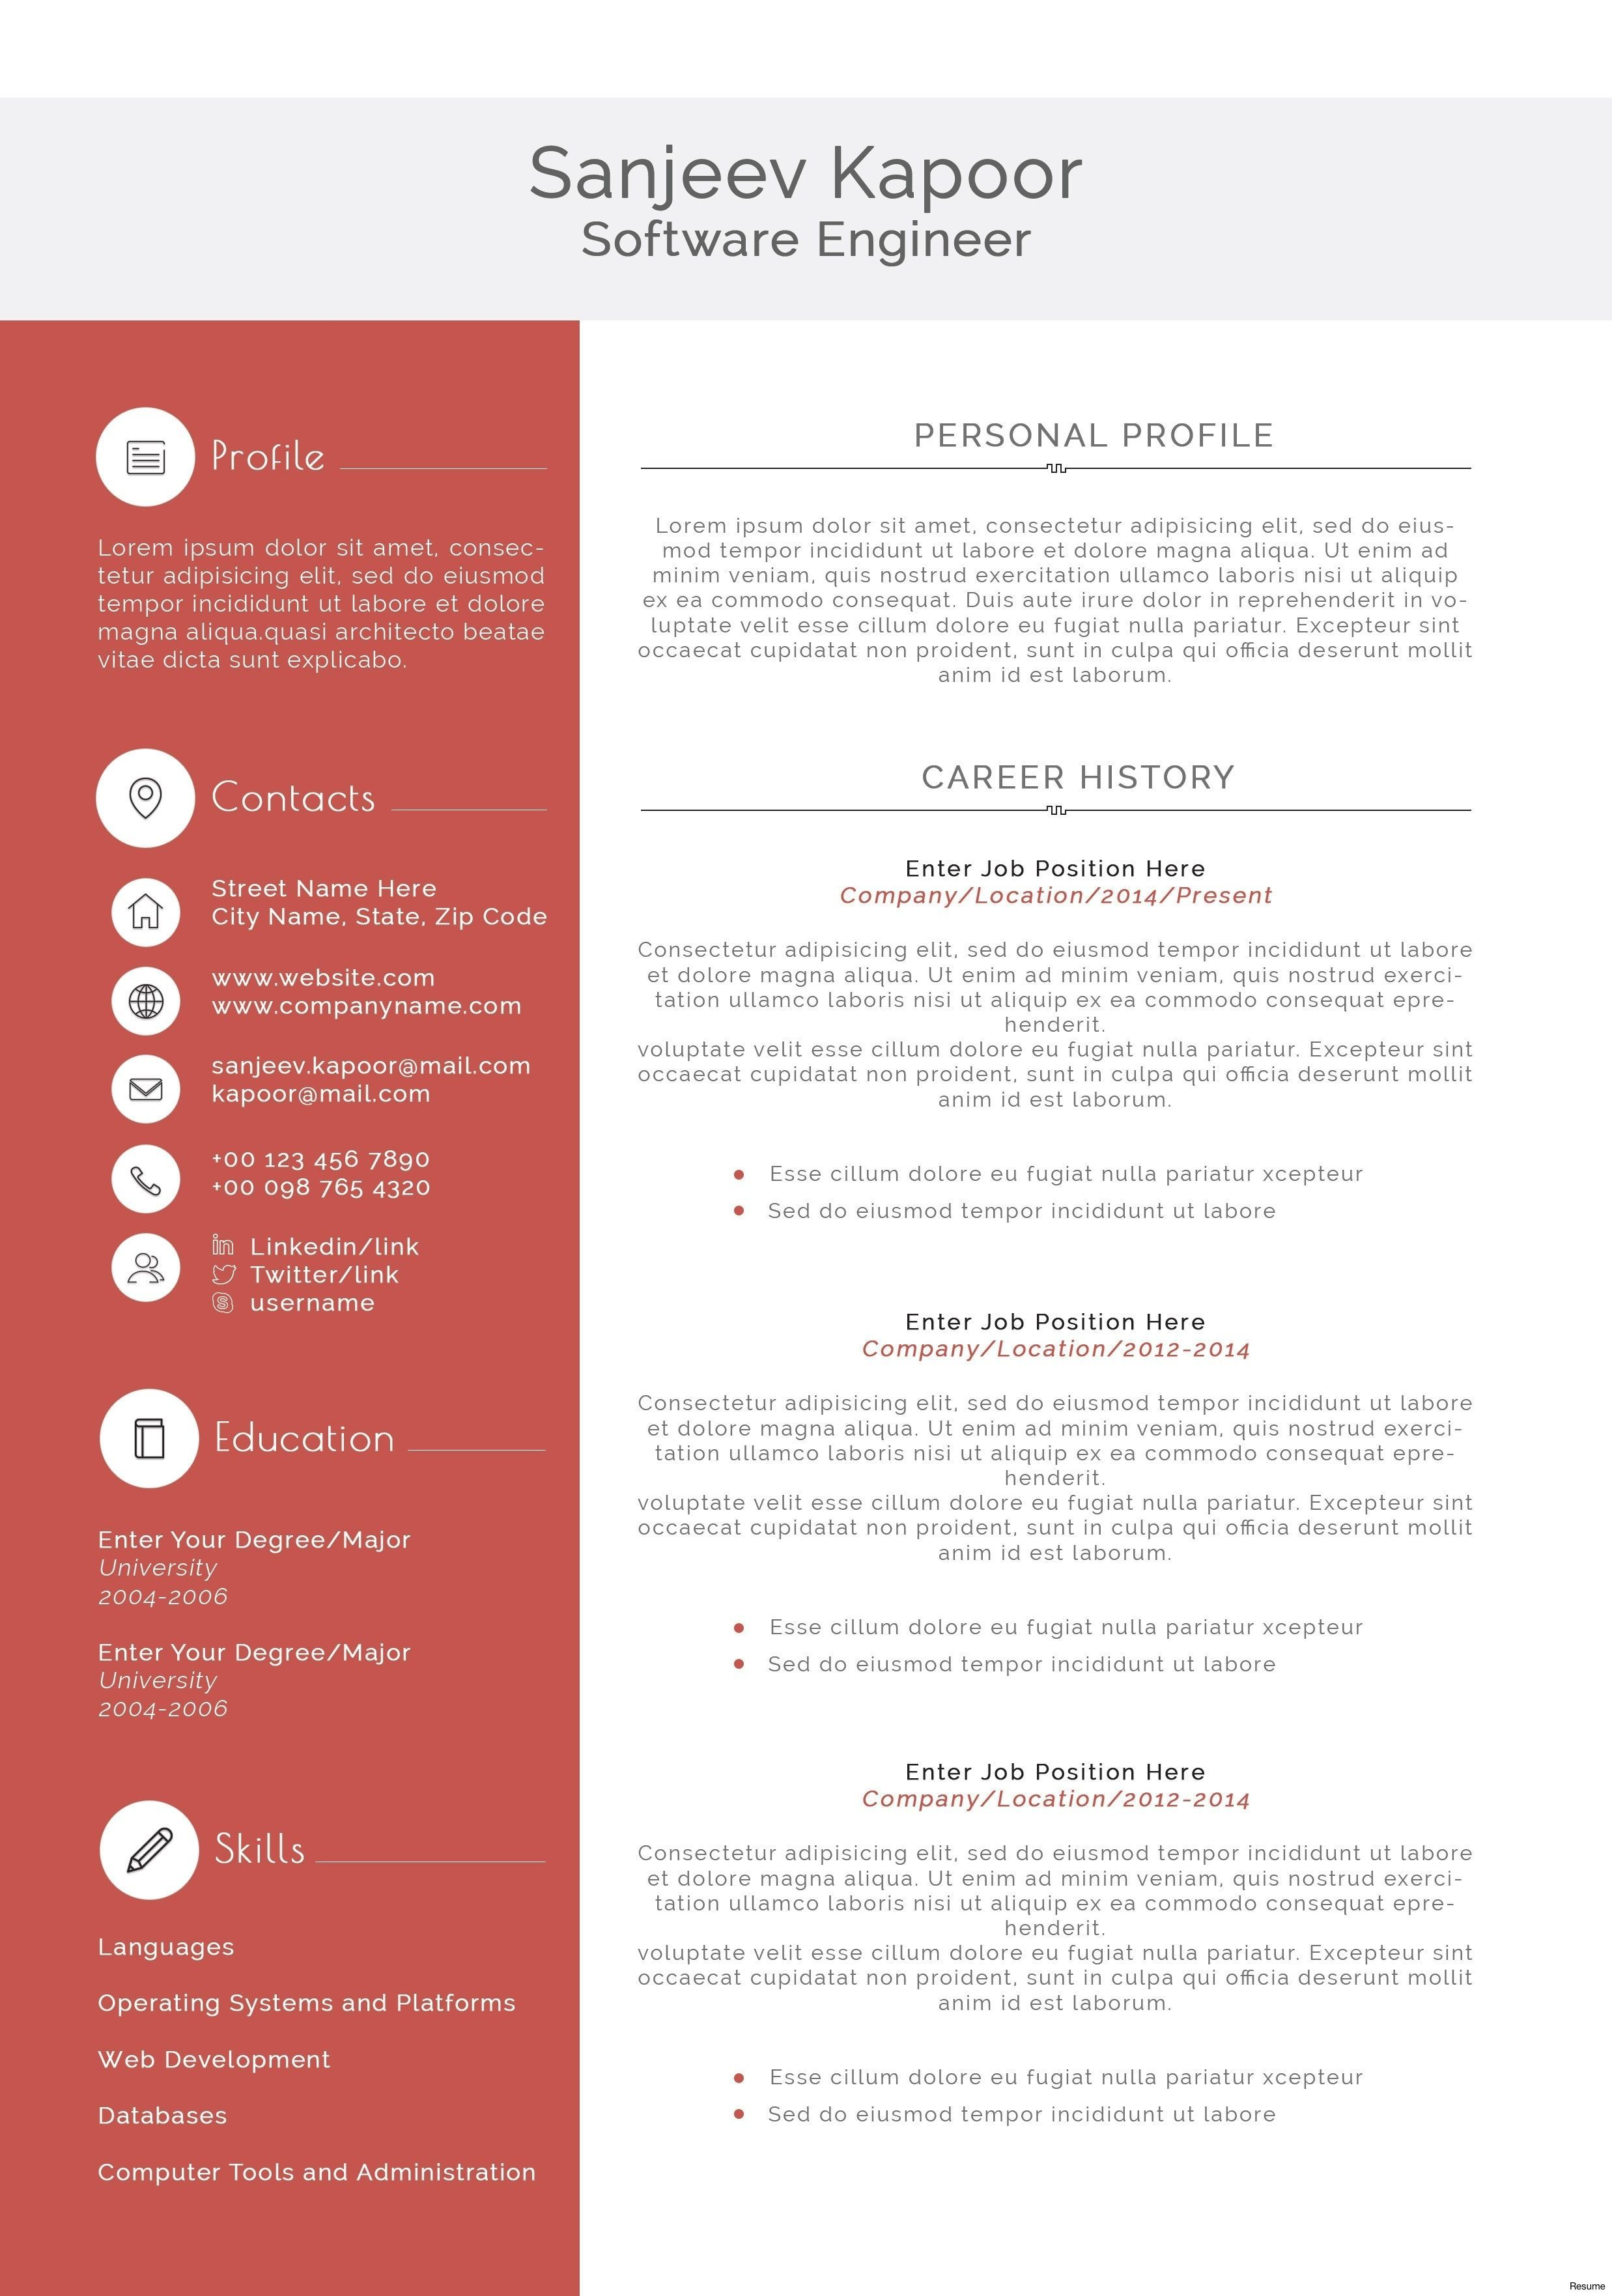 Free Resume Templates Software Engineer Engineer Freeresumetemplates Resume Software Templat Resume Template Free Resume Template Word Resume Templates